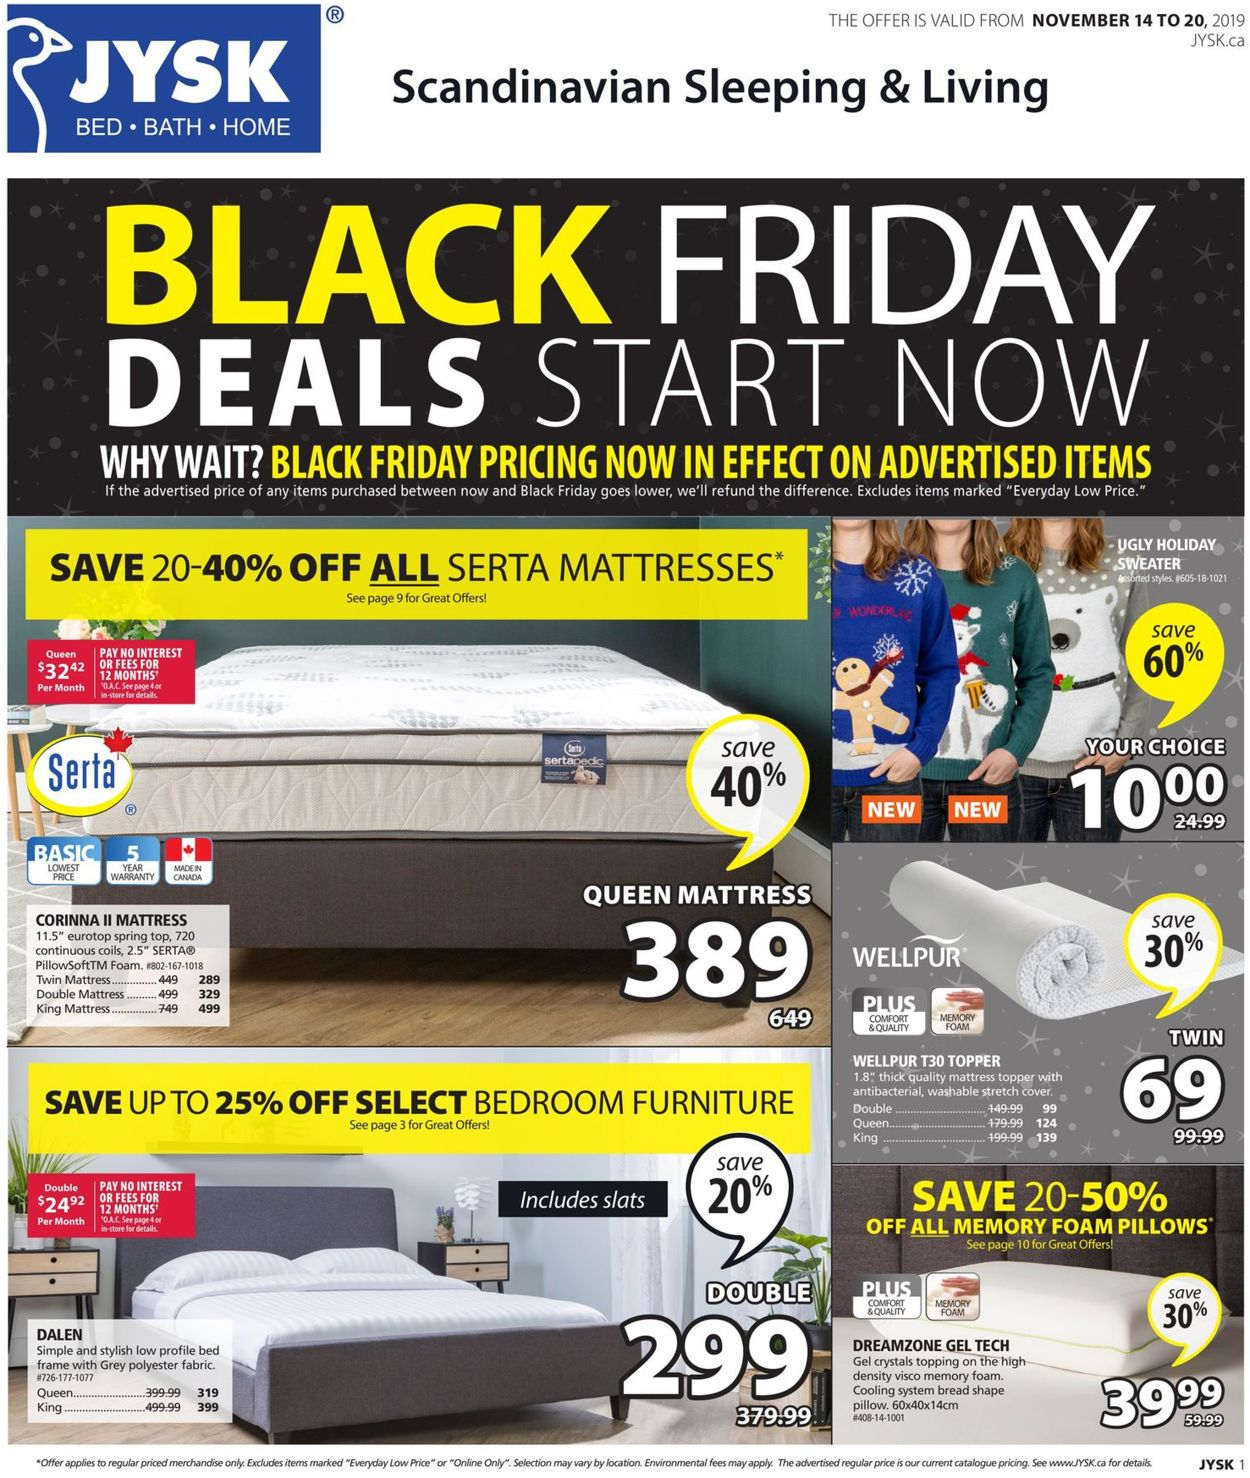 JYSK - BLACK FRIDAY 2019 Deals Flyer - 11/14-11/20/2019